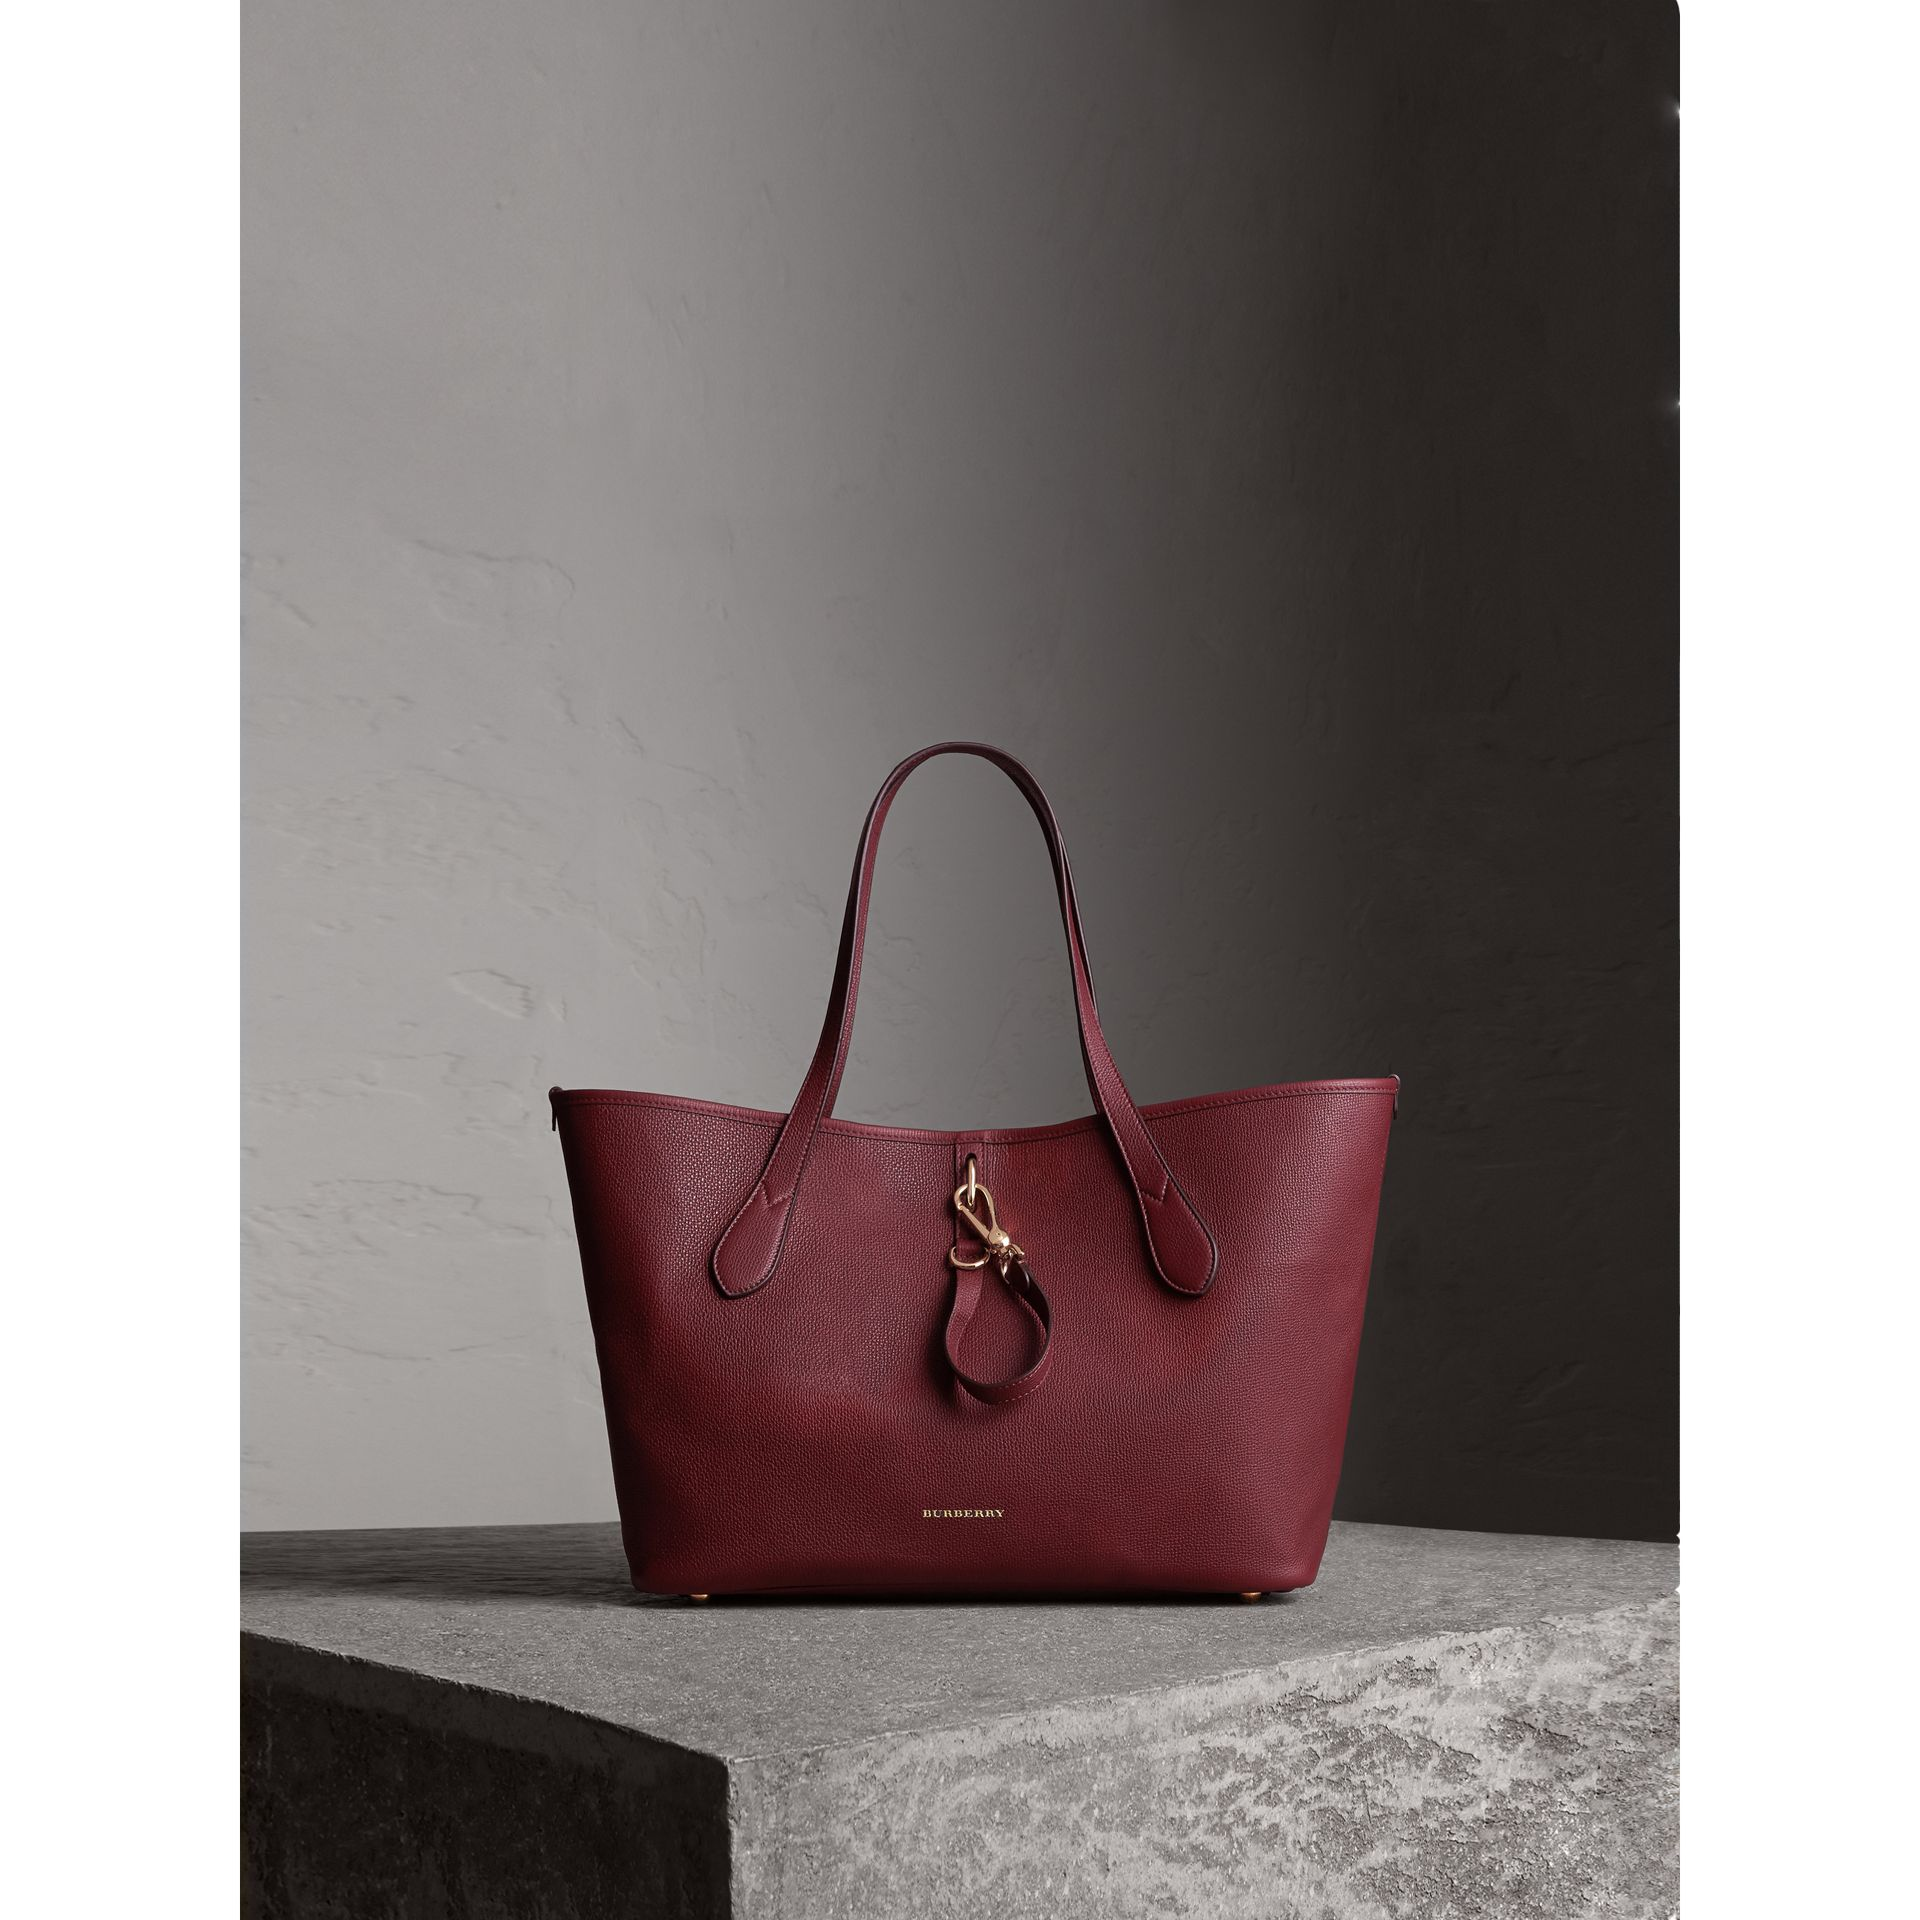 Medium Grainy Leather Tote Bag in Mahogany Red - Women | Burberry Canada - gallery image 1